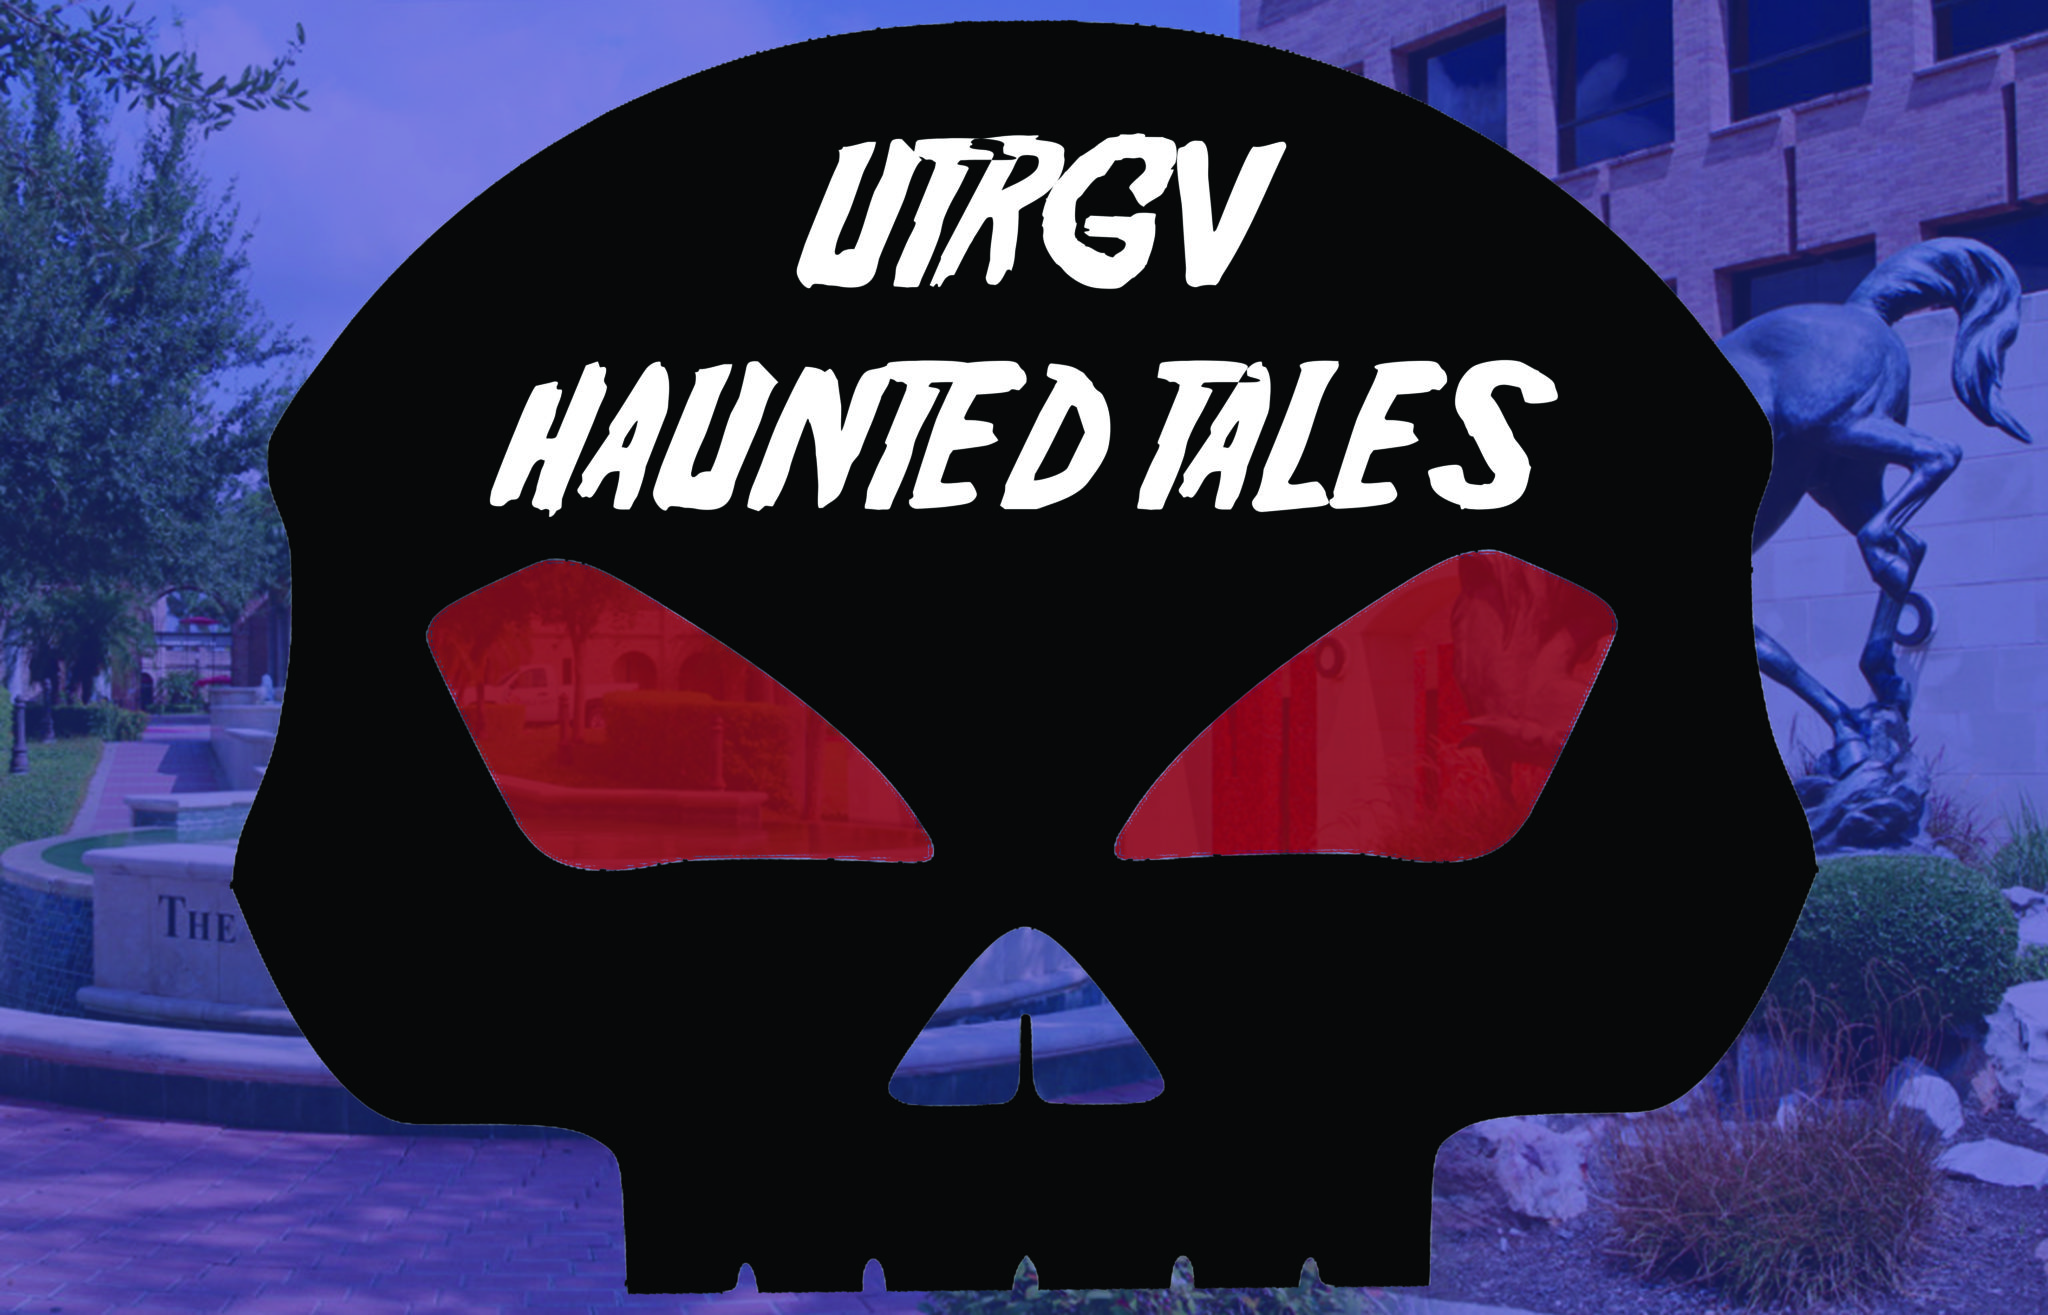 A picture of a skull with the words UTRGV Haunted Tales inside of it.